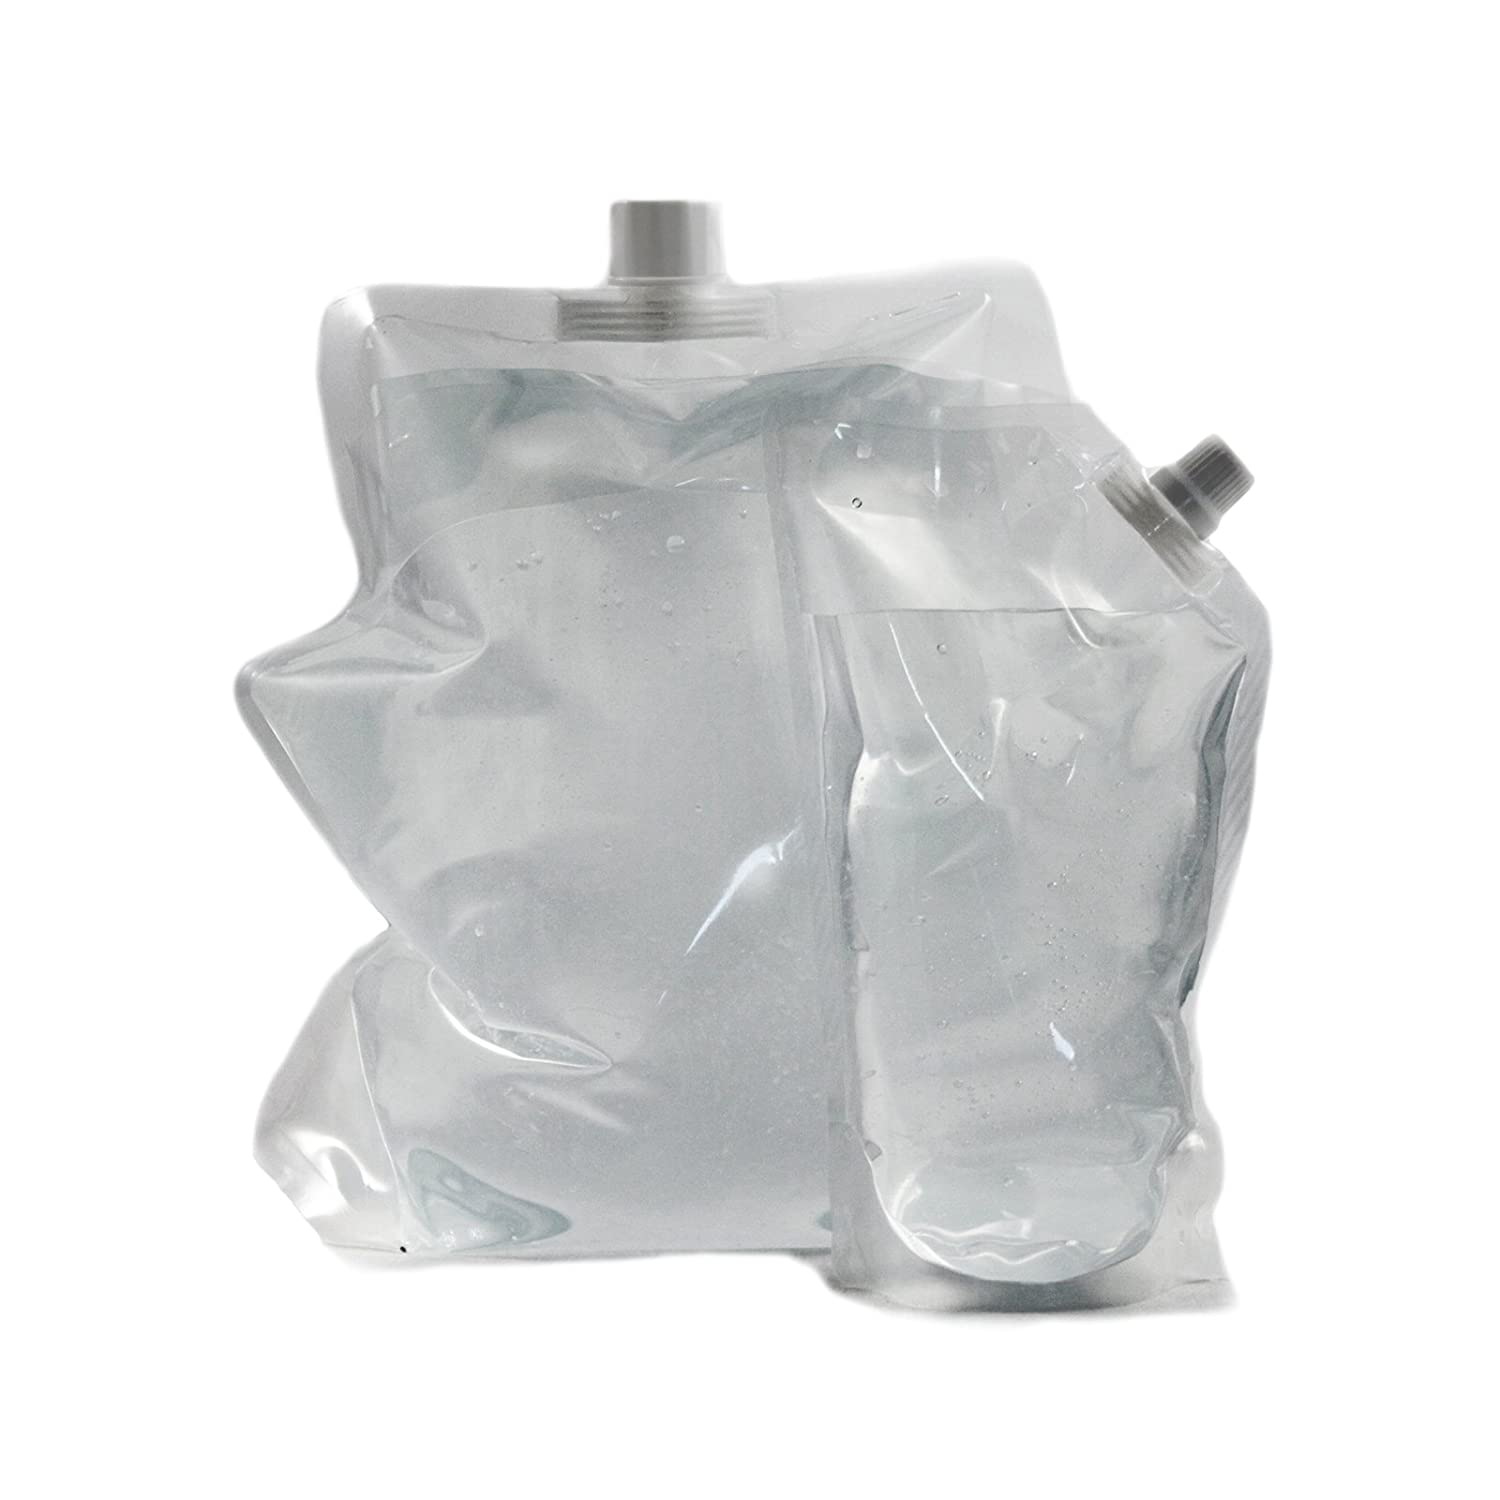 (Combo) Emergency Survival 500mL) Outdoor Liquid Flask (5 Liter   500mL) Survival by ASR Outdoor 470093